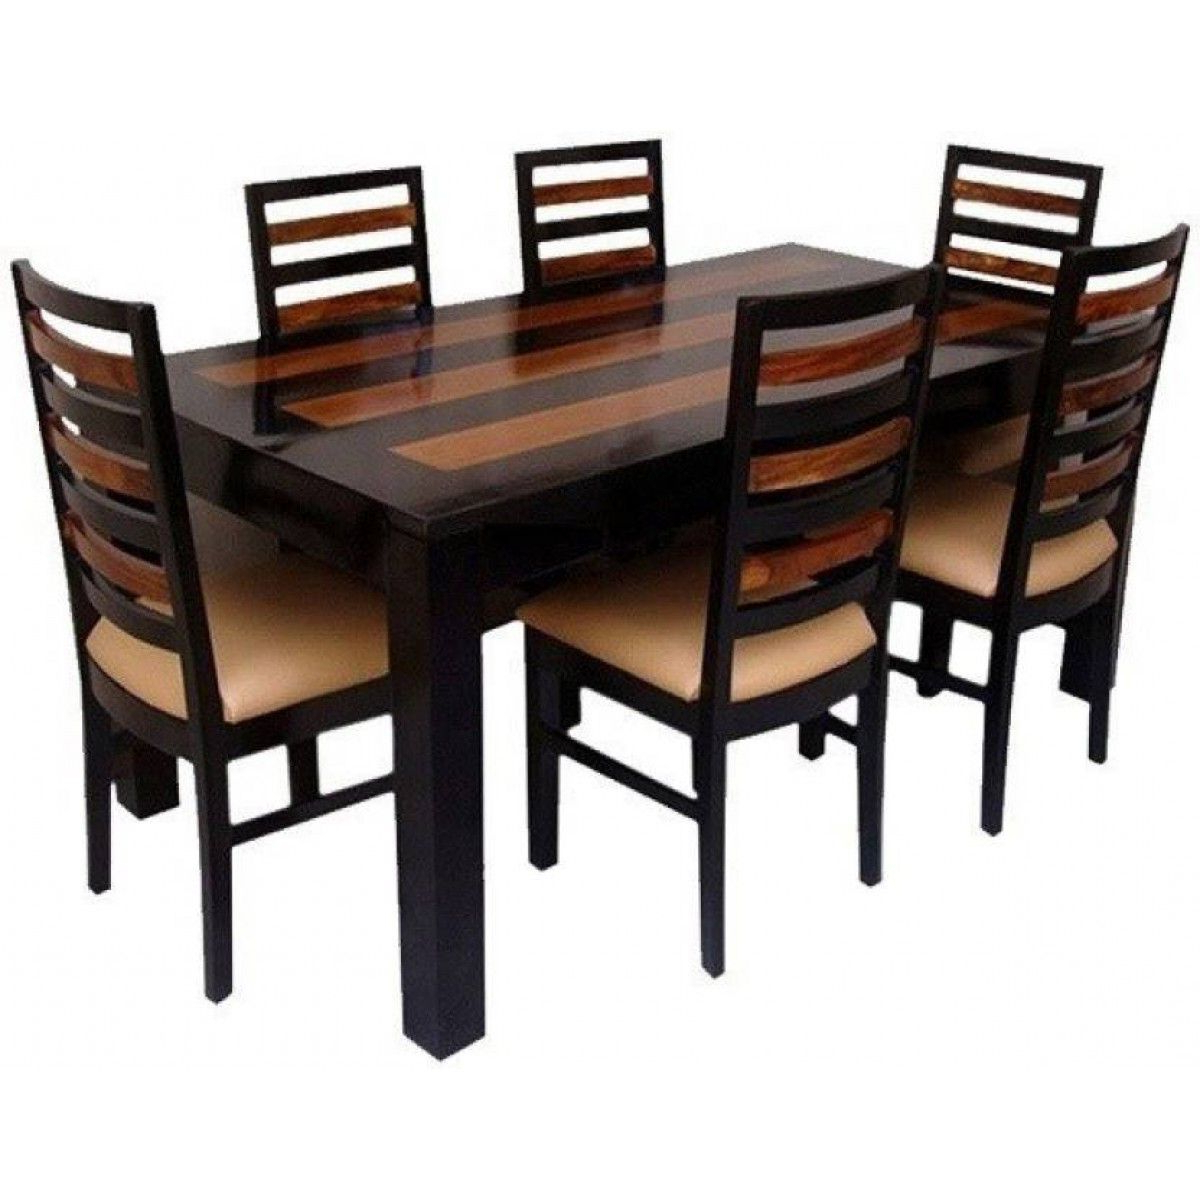 6 Seater Retangular Wood Contemporary Dining Tables In Most Current Wooden Designed Dining Table Set (View 4 of 25)